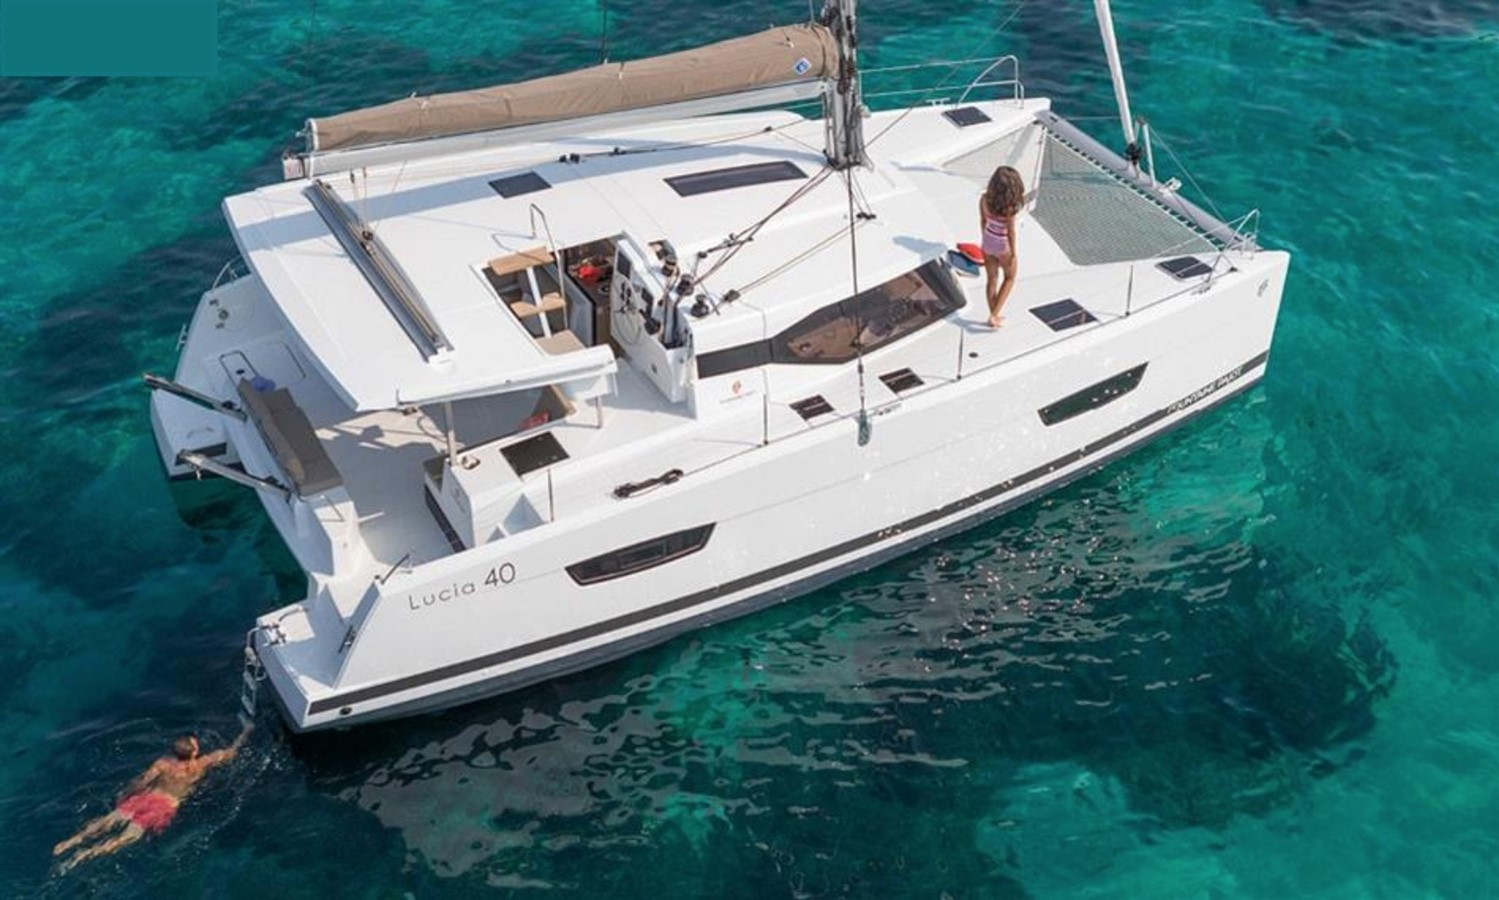 2017 Fountaine Pajot 40 - For Sale in the SE USA 2017 FOUNTAINE PAJOT Lucia Catamaran 2567480